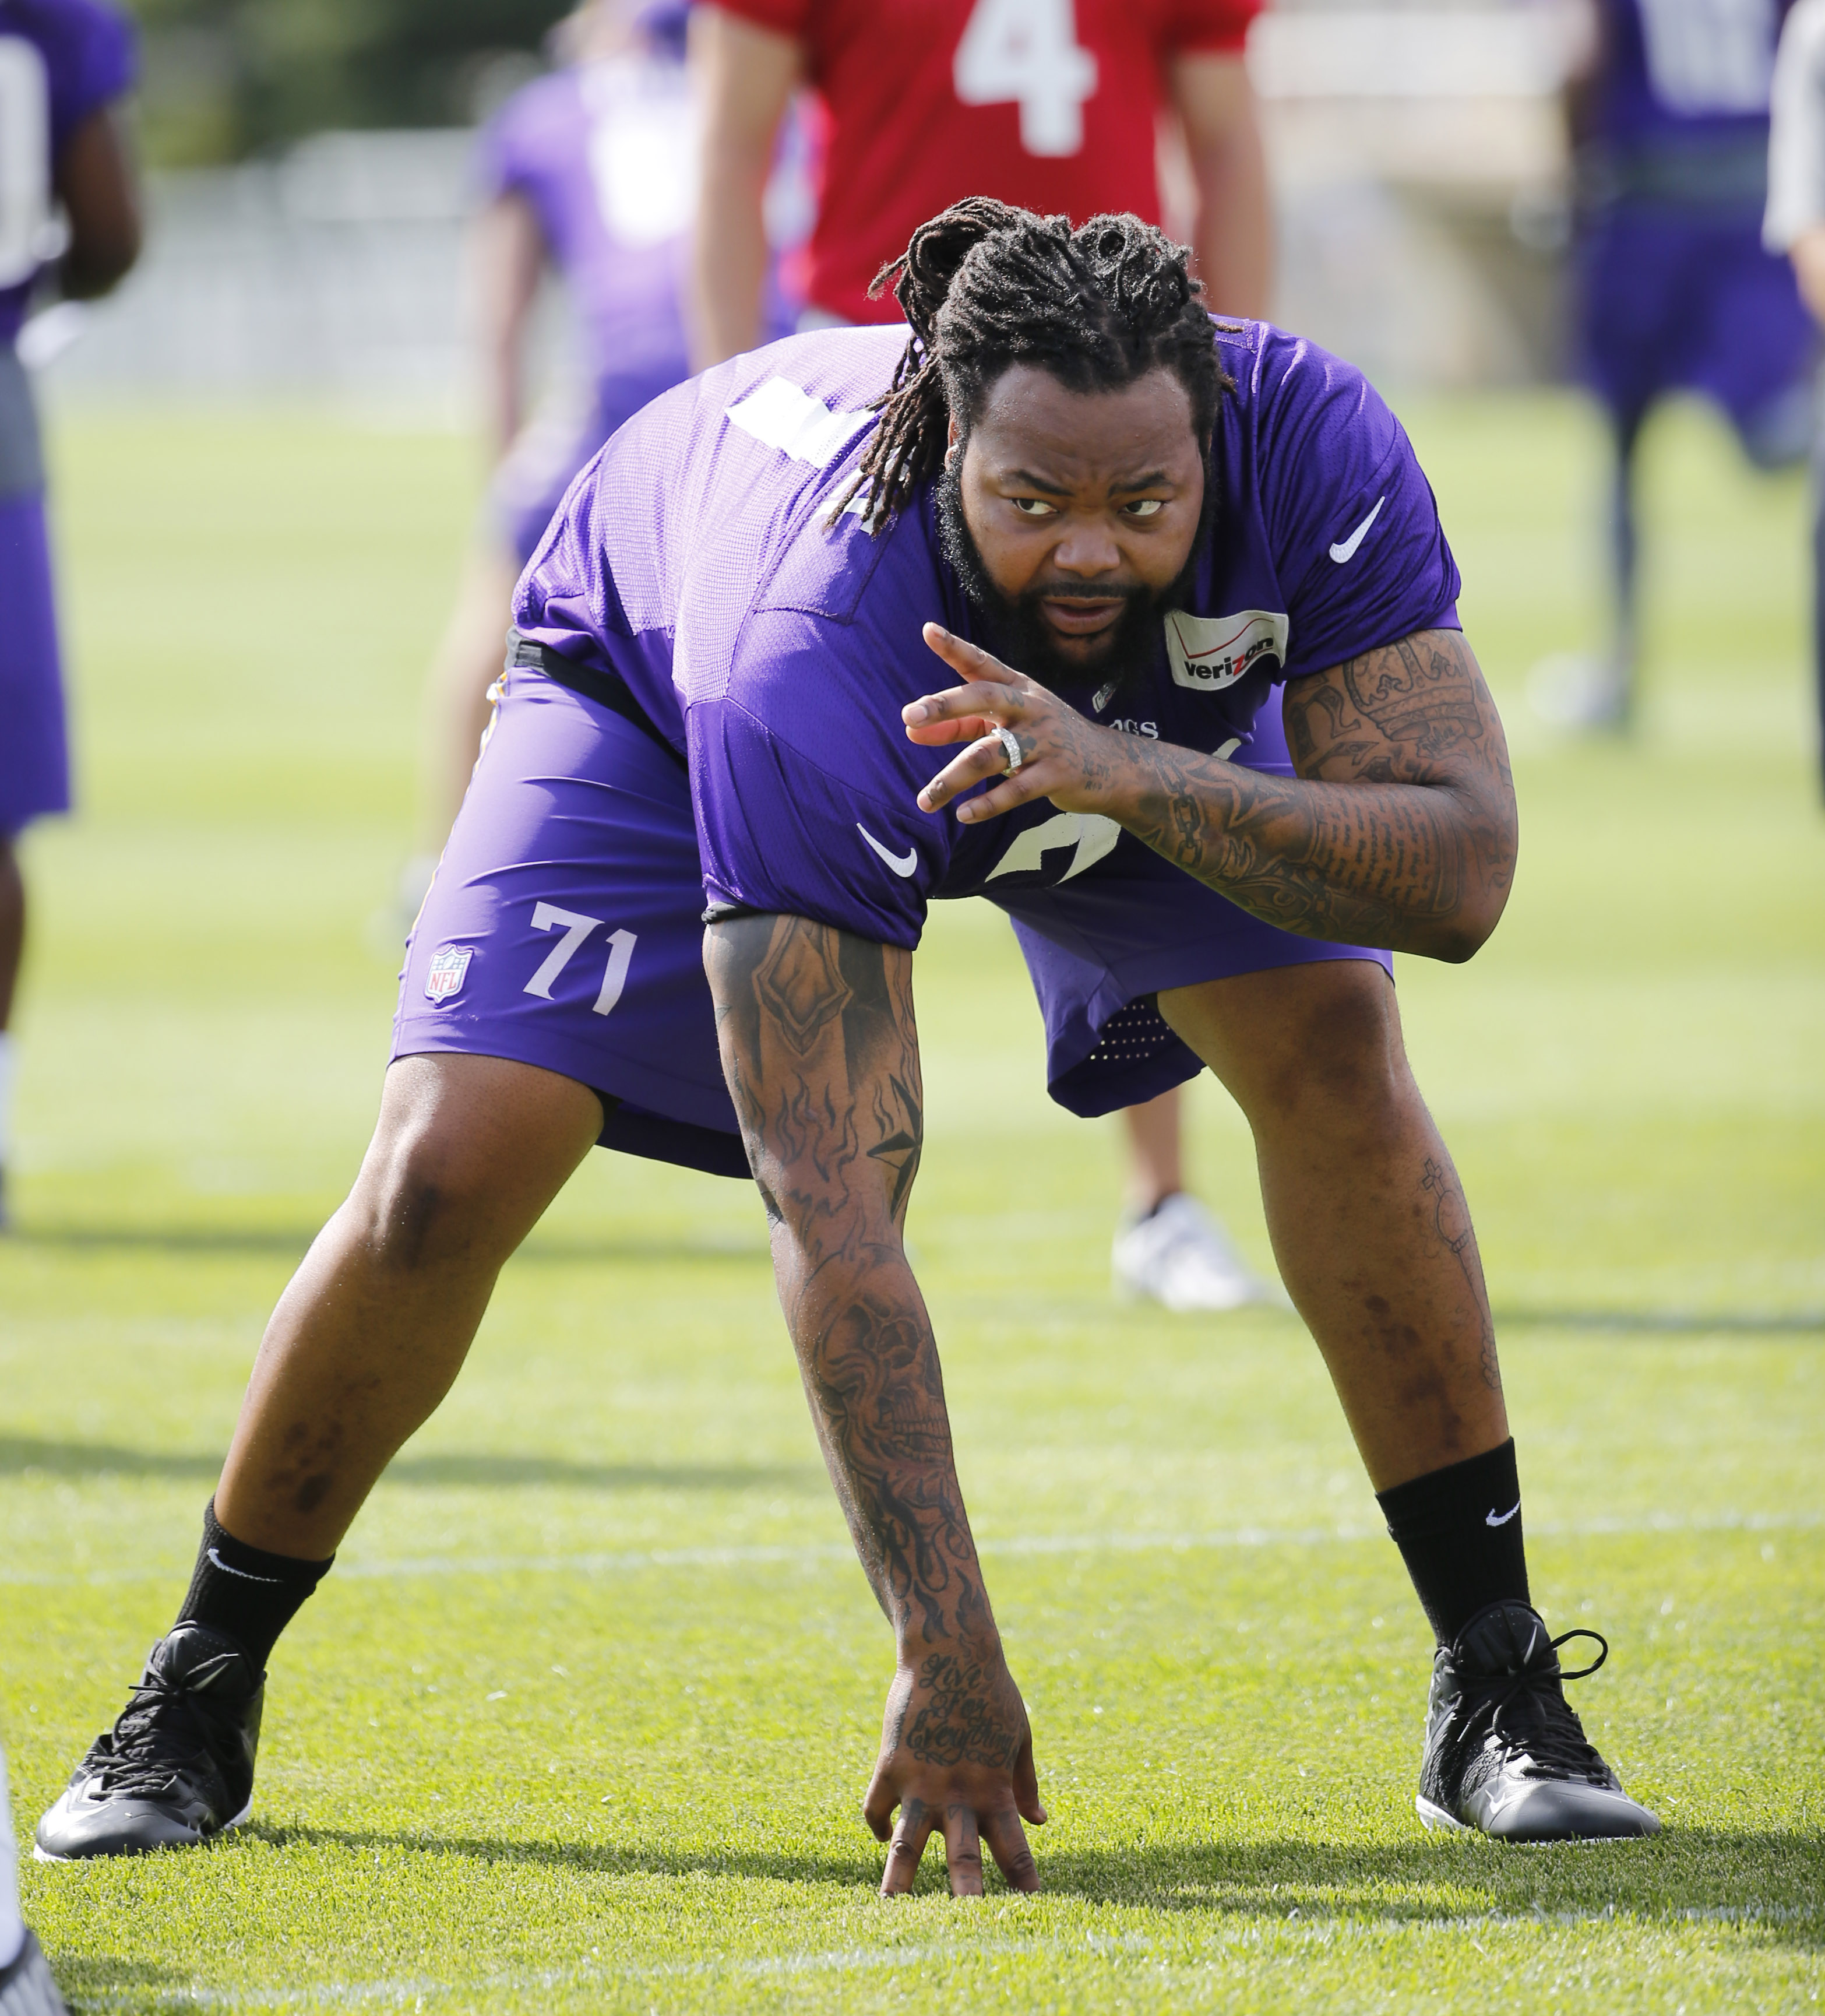 Minnesota Vikings tackle Phil Loadholt identifies a defensive player during practice at an NFL football training camp on the campus of Minnesota State University, Sunday, July 26, 2015, in Mankato, Minn. (AP Photo/Charles Rex Arbogast)